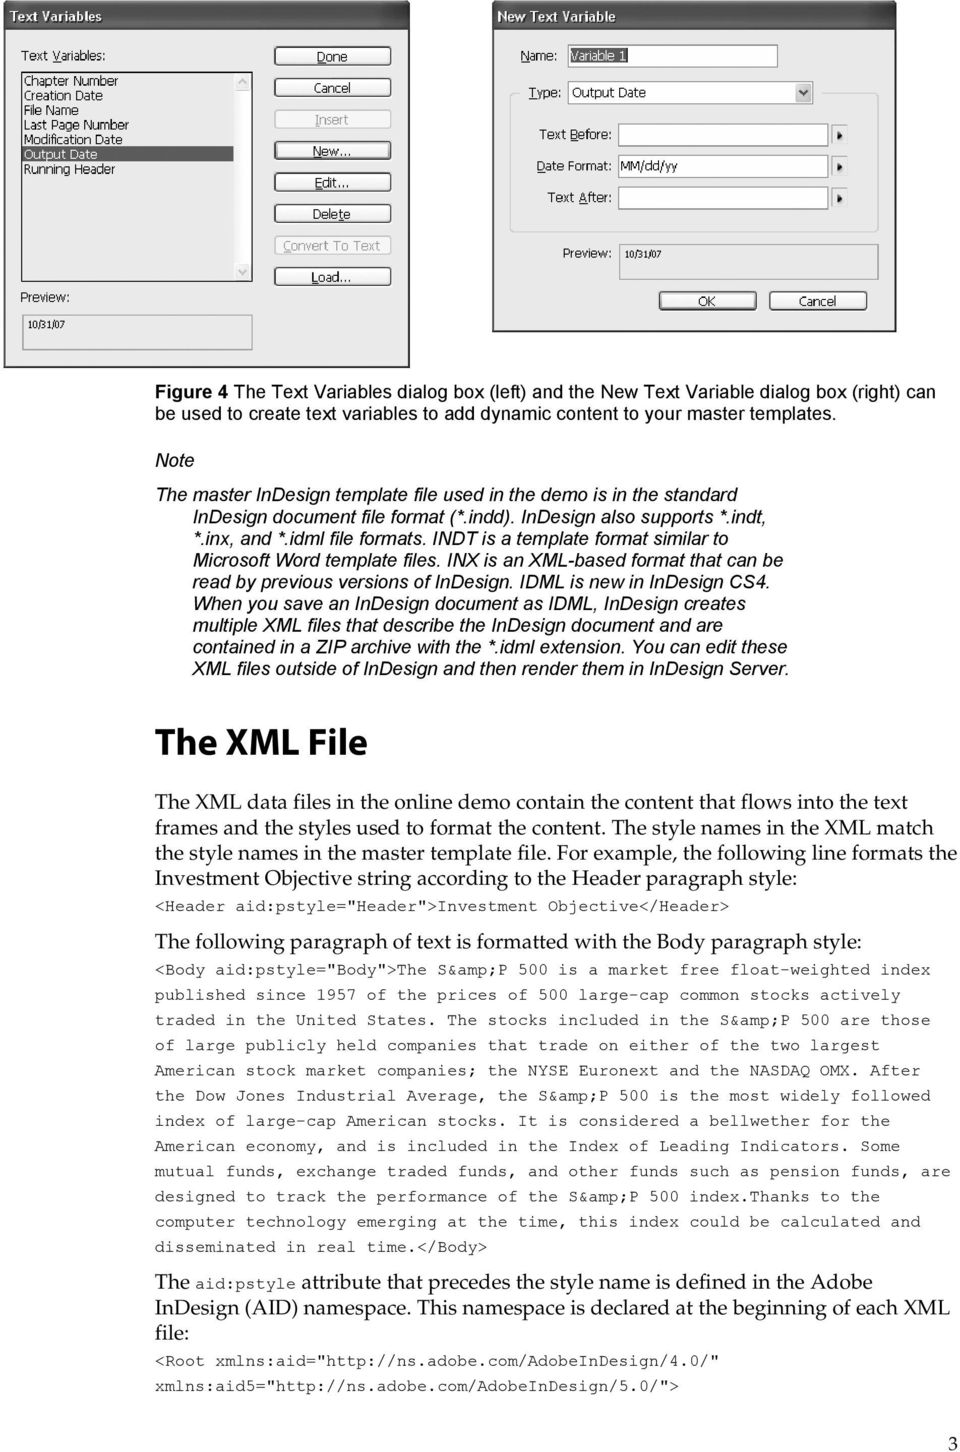 INDT is a template format similar to Microsoft Word template files. INX is an XML-based format that can be read by previous versions of InDesign. IDML is new in InDesign CS4.